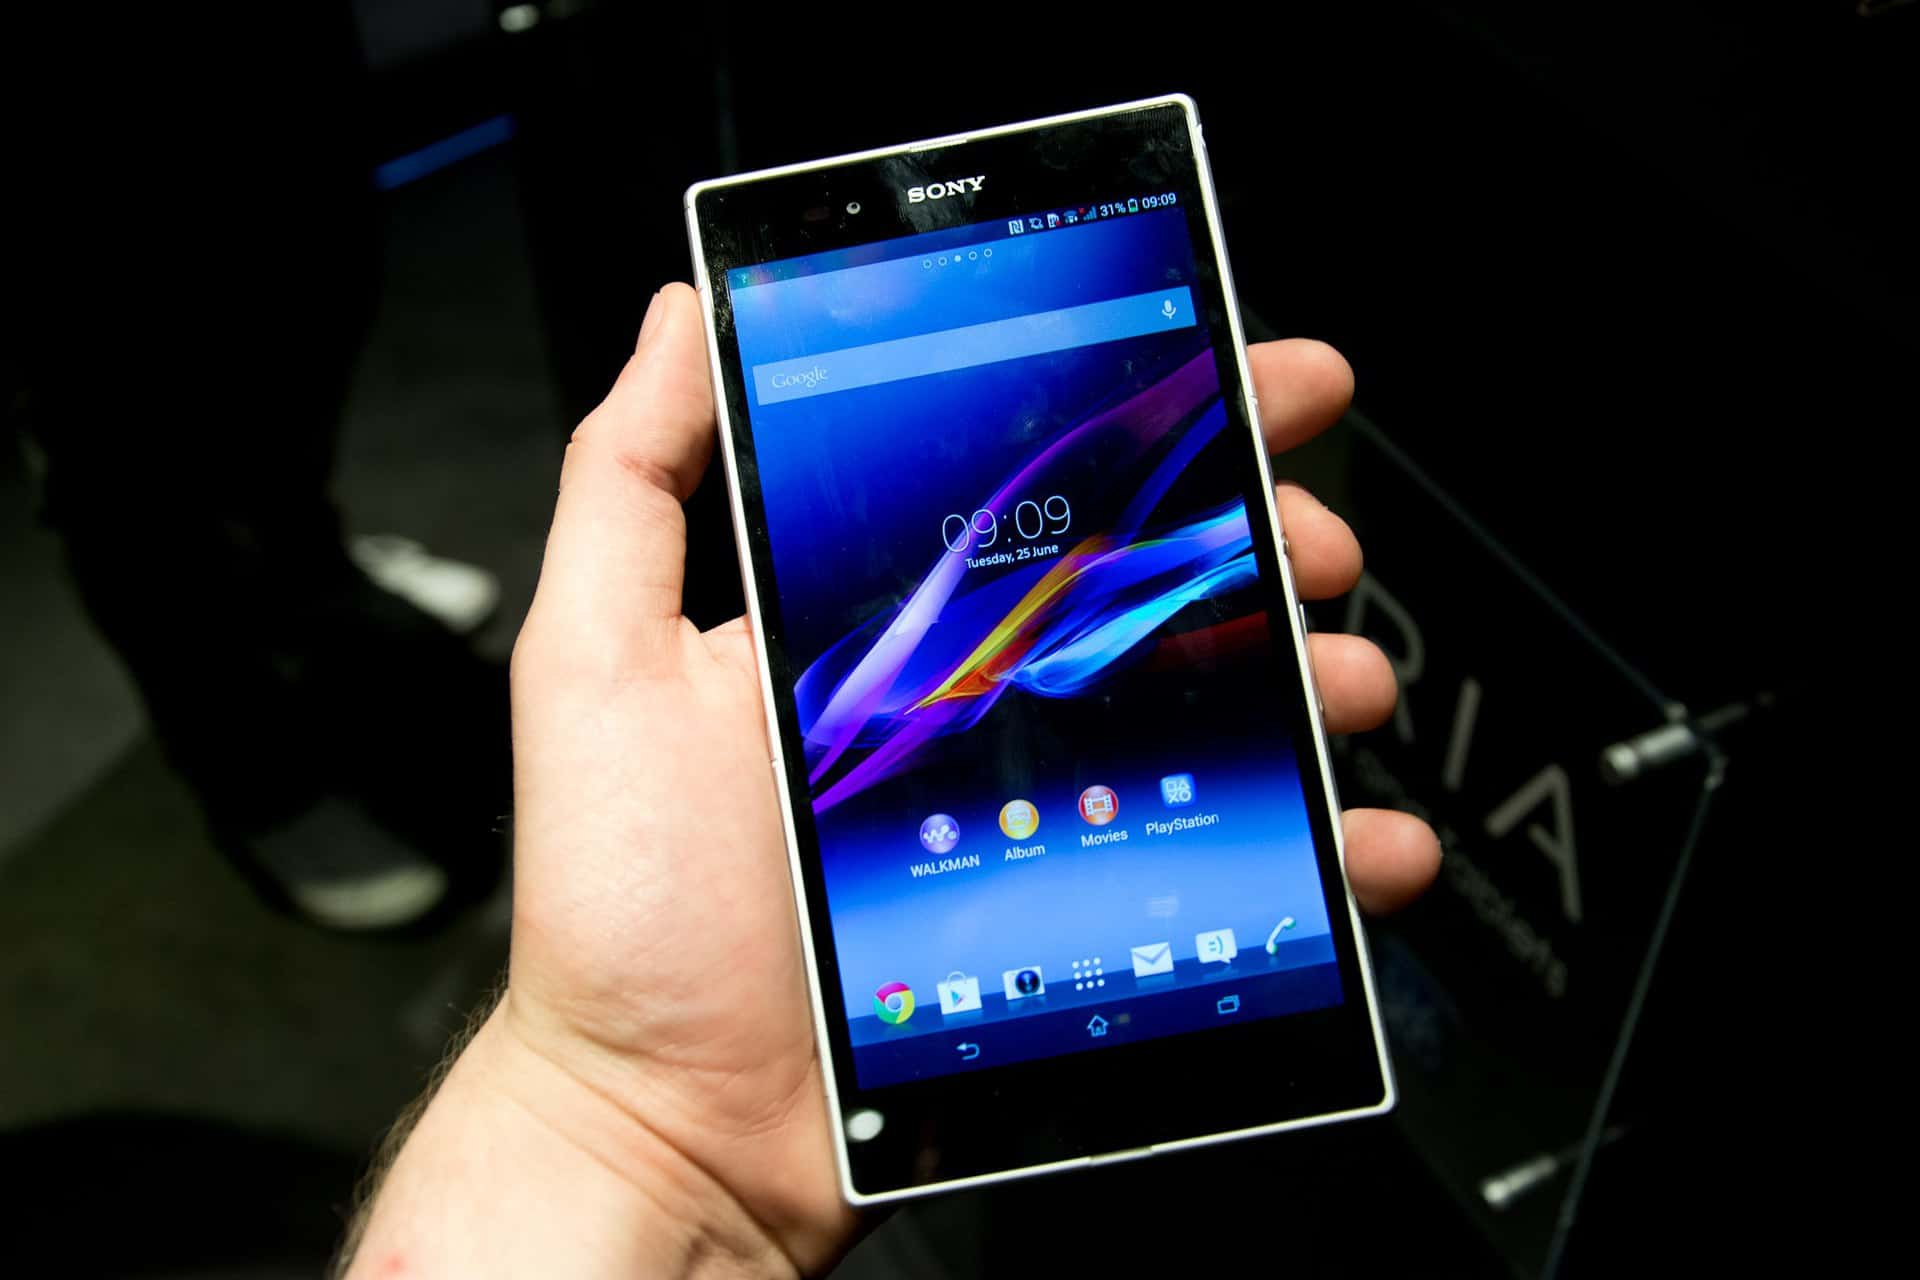 How To Root The Sony Xperia Z Ultra